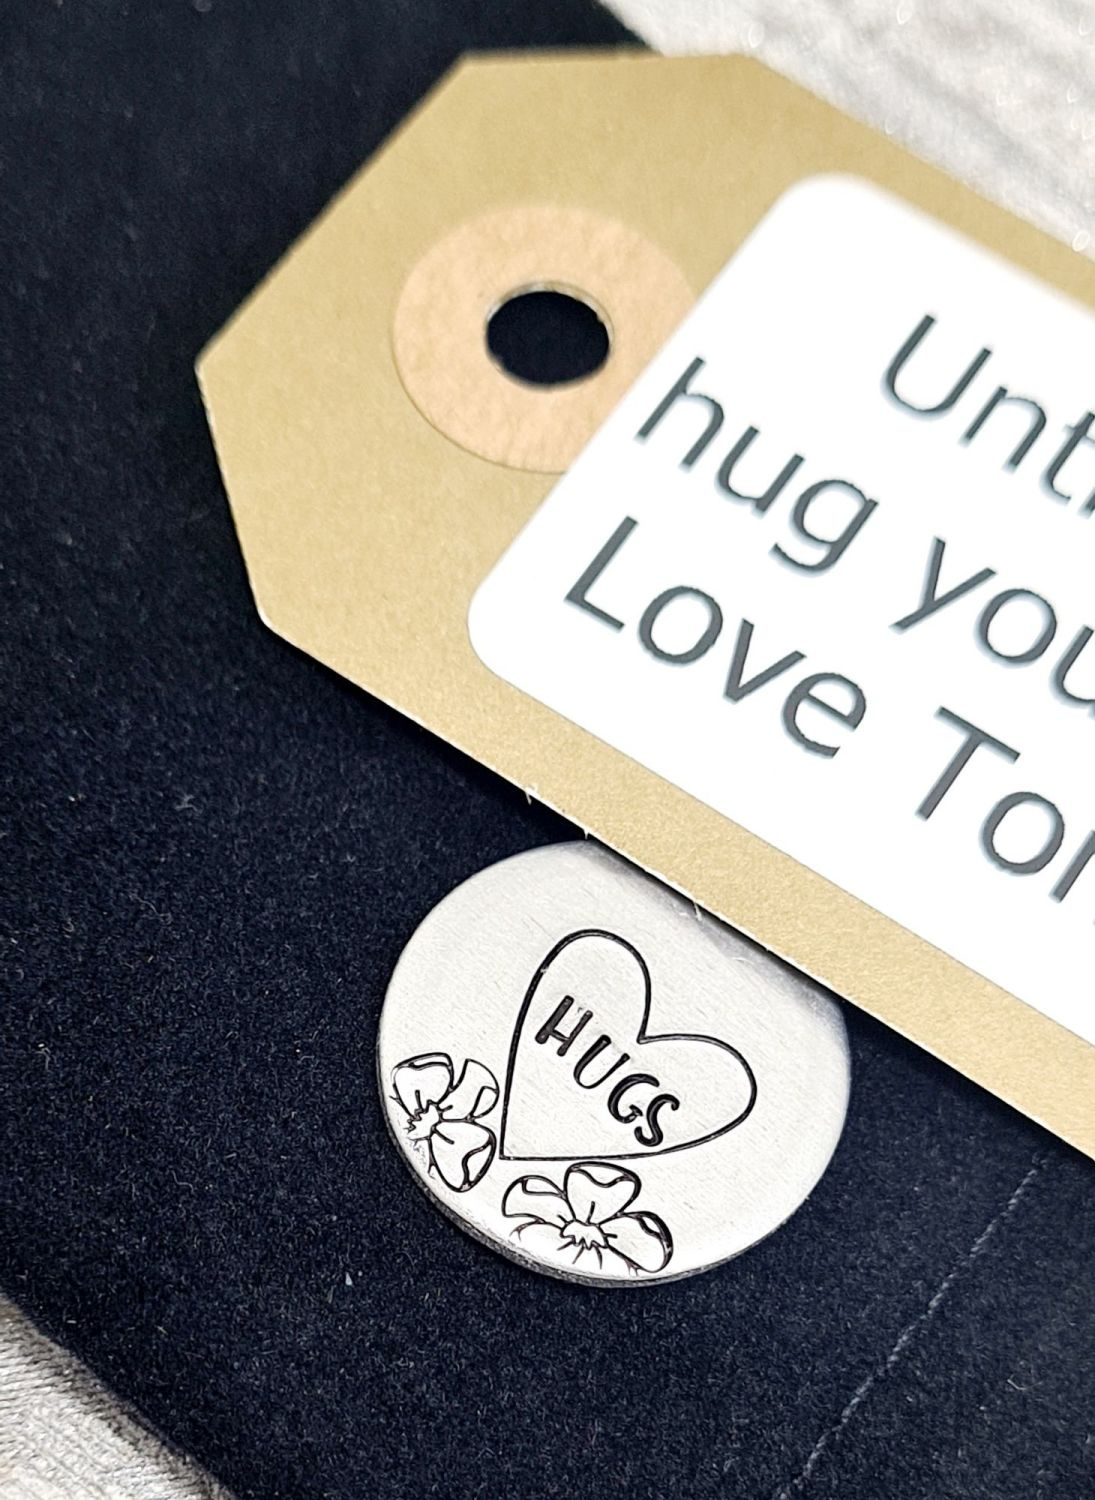 Mini Hug Pocket Hug  - Token